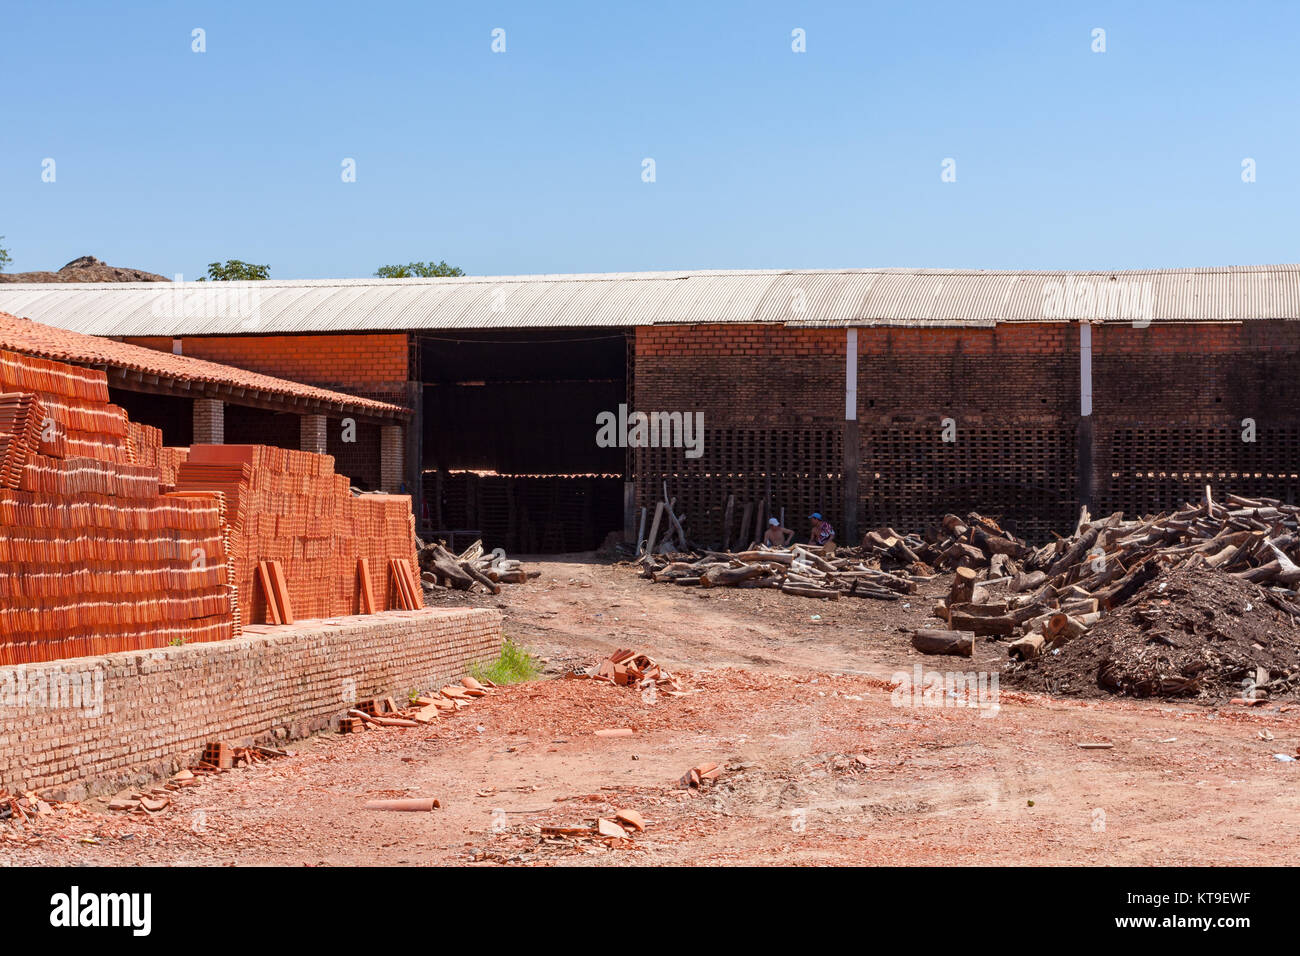 Roofing tile and bricks traditional operations factories, Tobati District, Cordillera Department, Paraguay - Stock Image